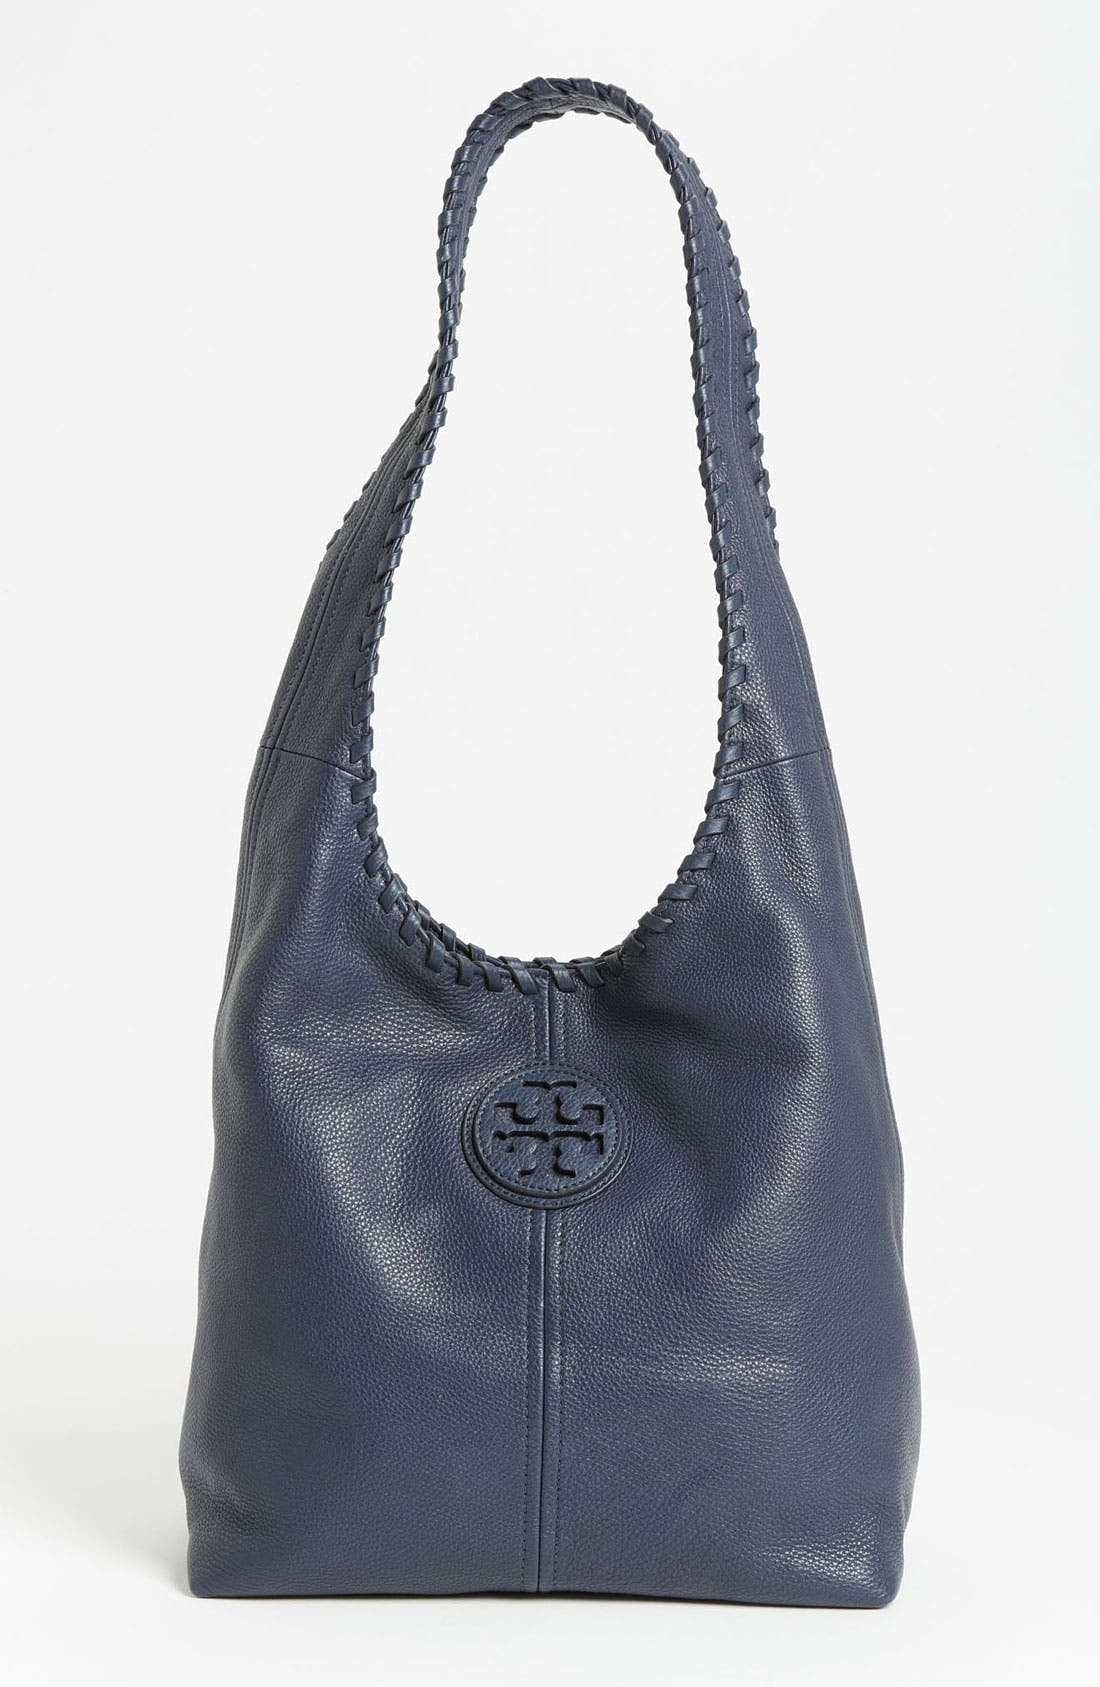 Alternate Image 1 Selected - Tory Burch 'Marion' Hobo